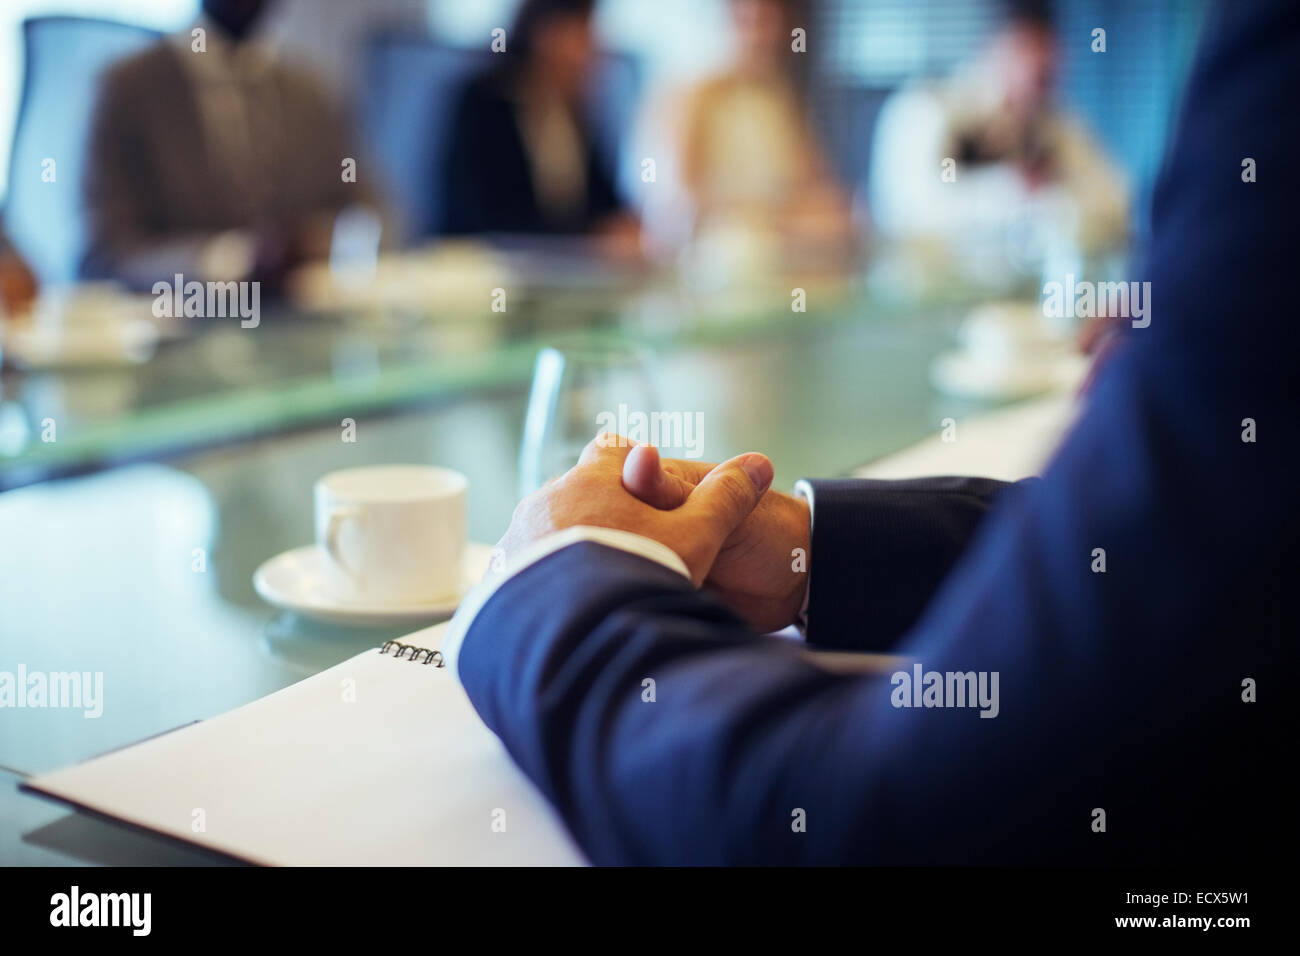 Businessman sitting at conference table in conference room with hands clasped - Stock Image